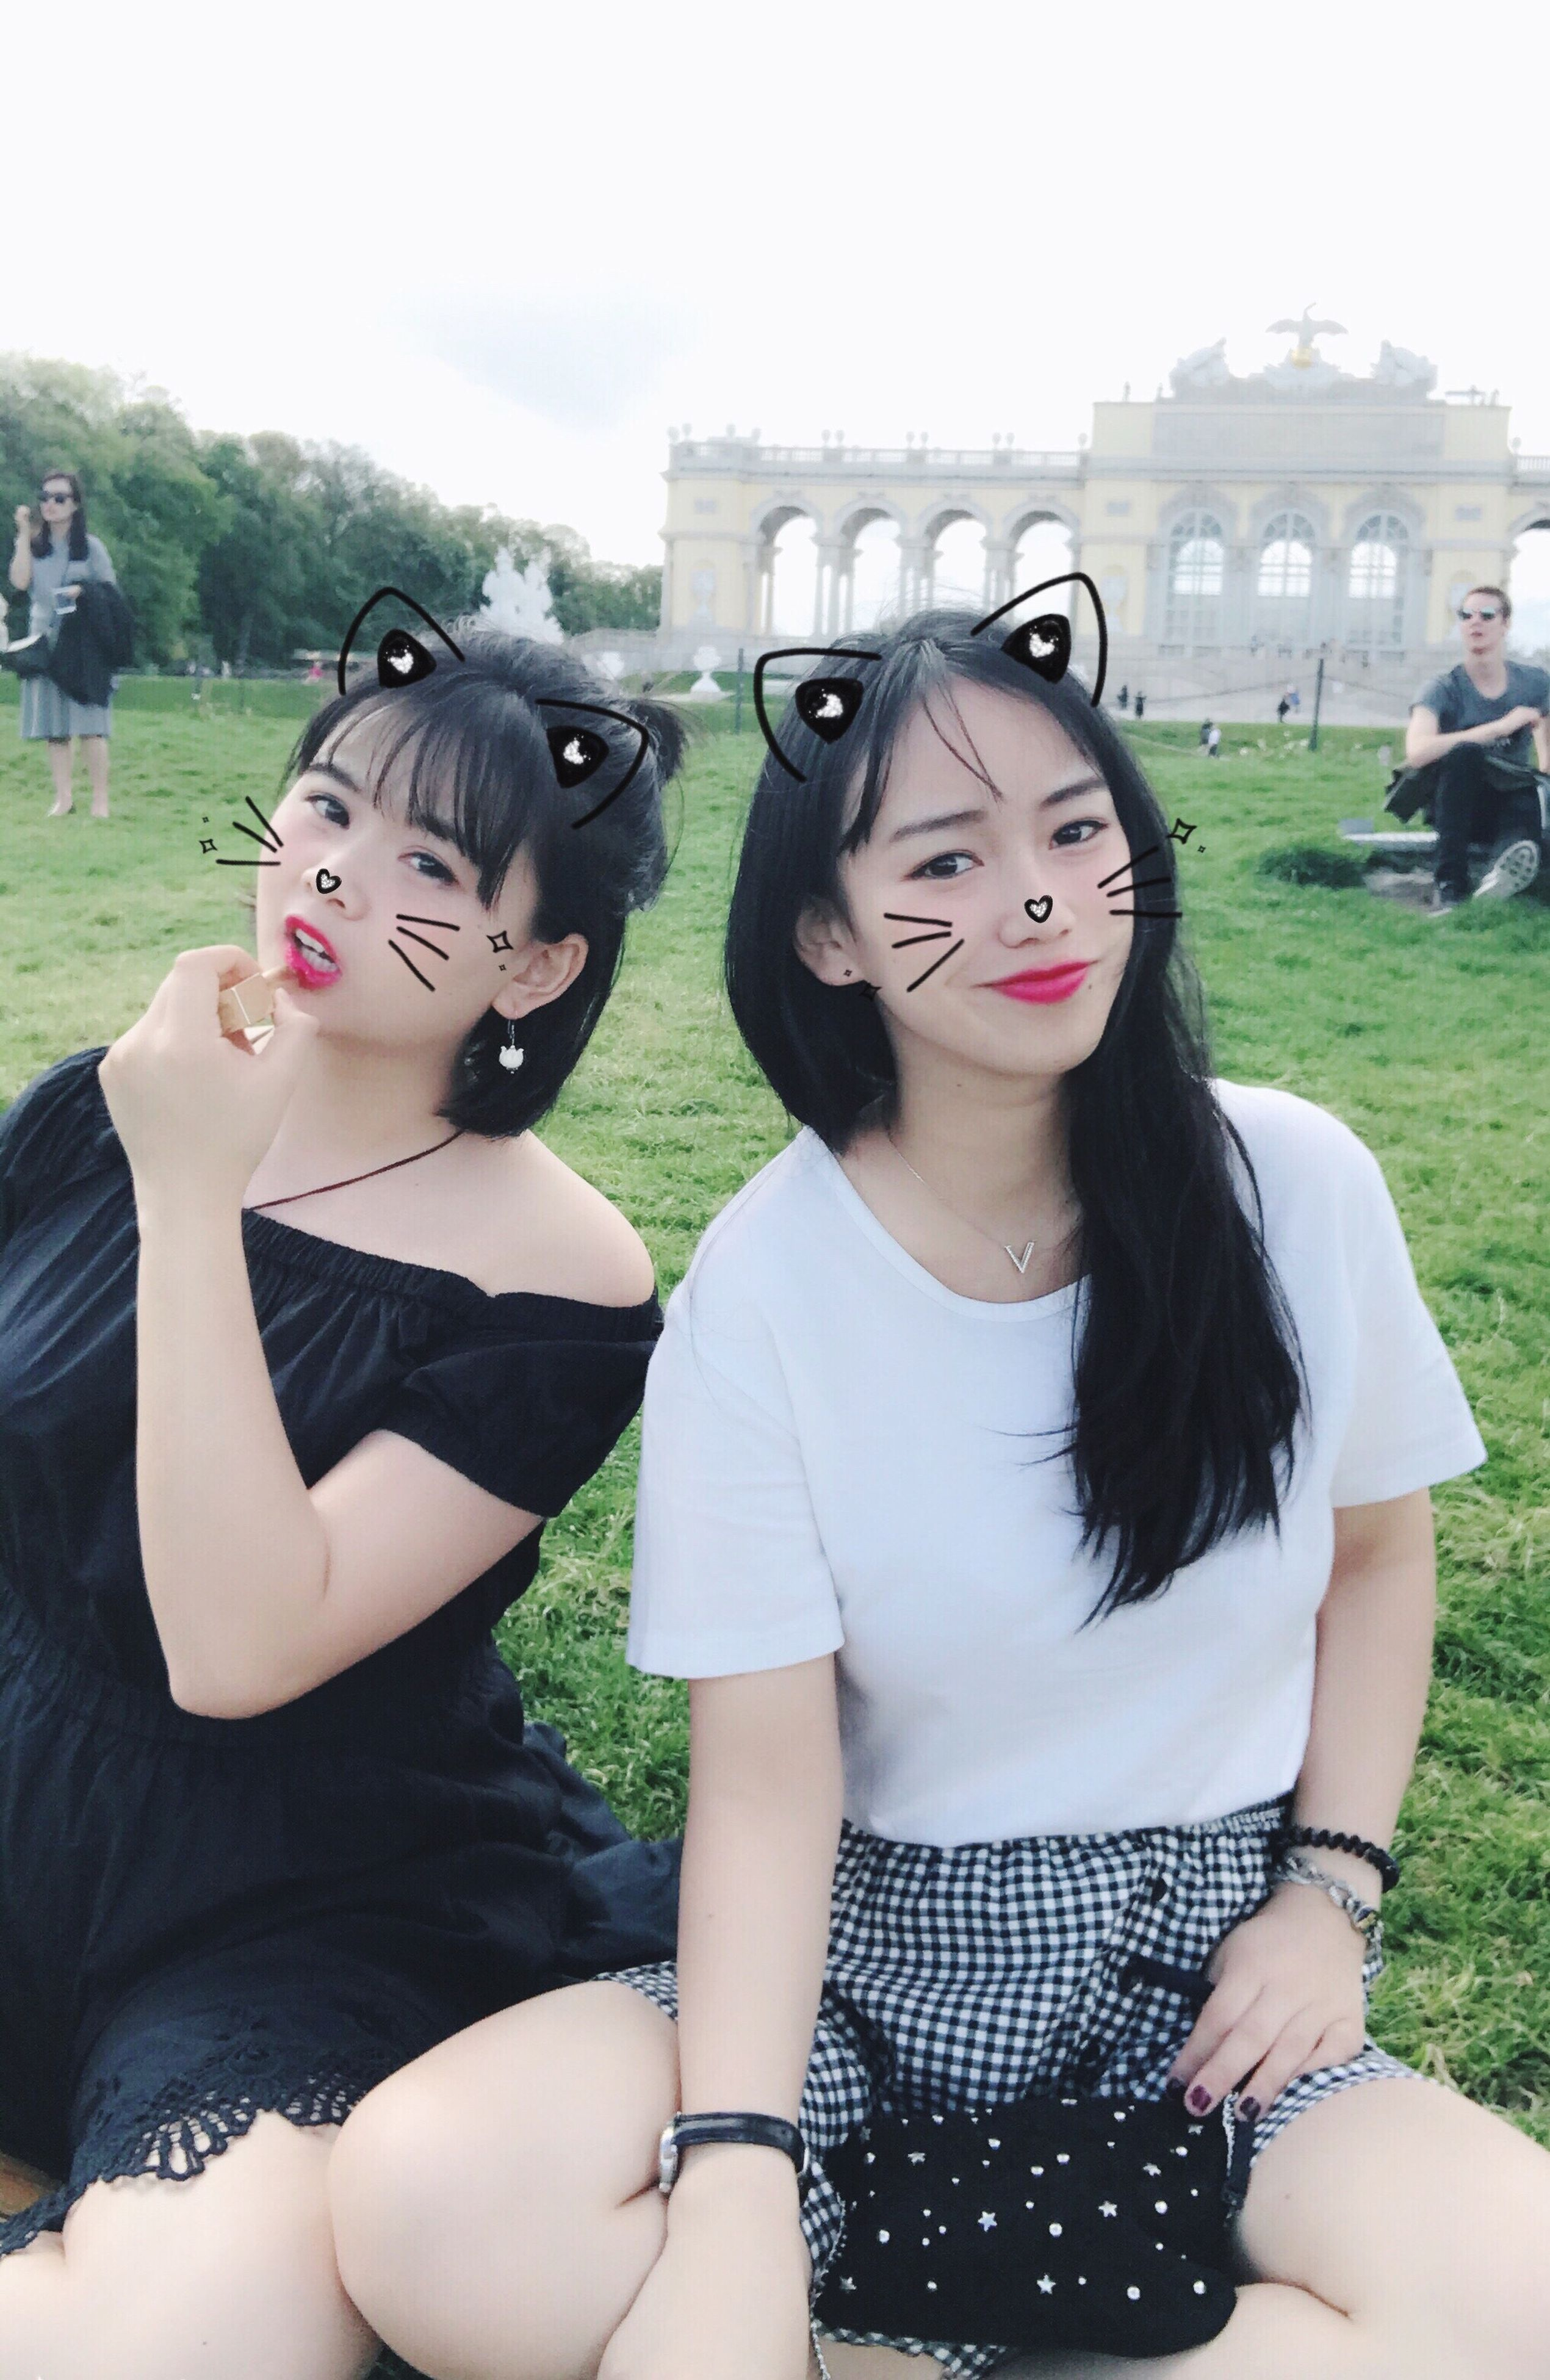 real people, black hair, young women, lawn, young adult, grass, two people, leisure activity, lifestyles, casual clothing, outdoors, day, built structure, sitting, architecture, front view, looking at camera, smiling, happiness, women, portrait, building exterior, togetherness, friendship, sky